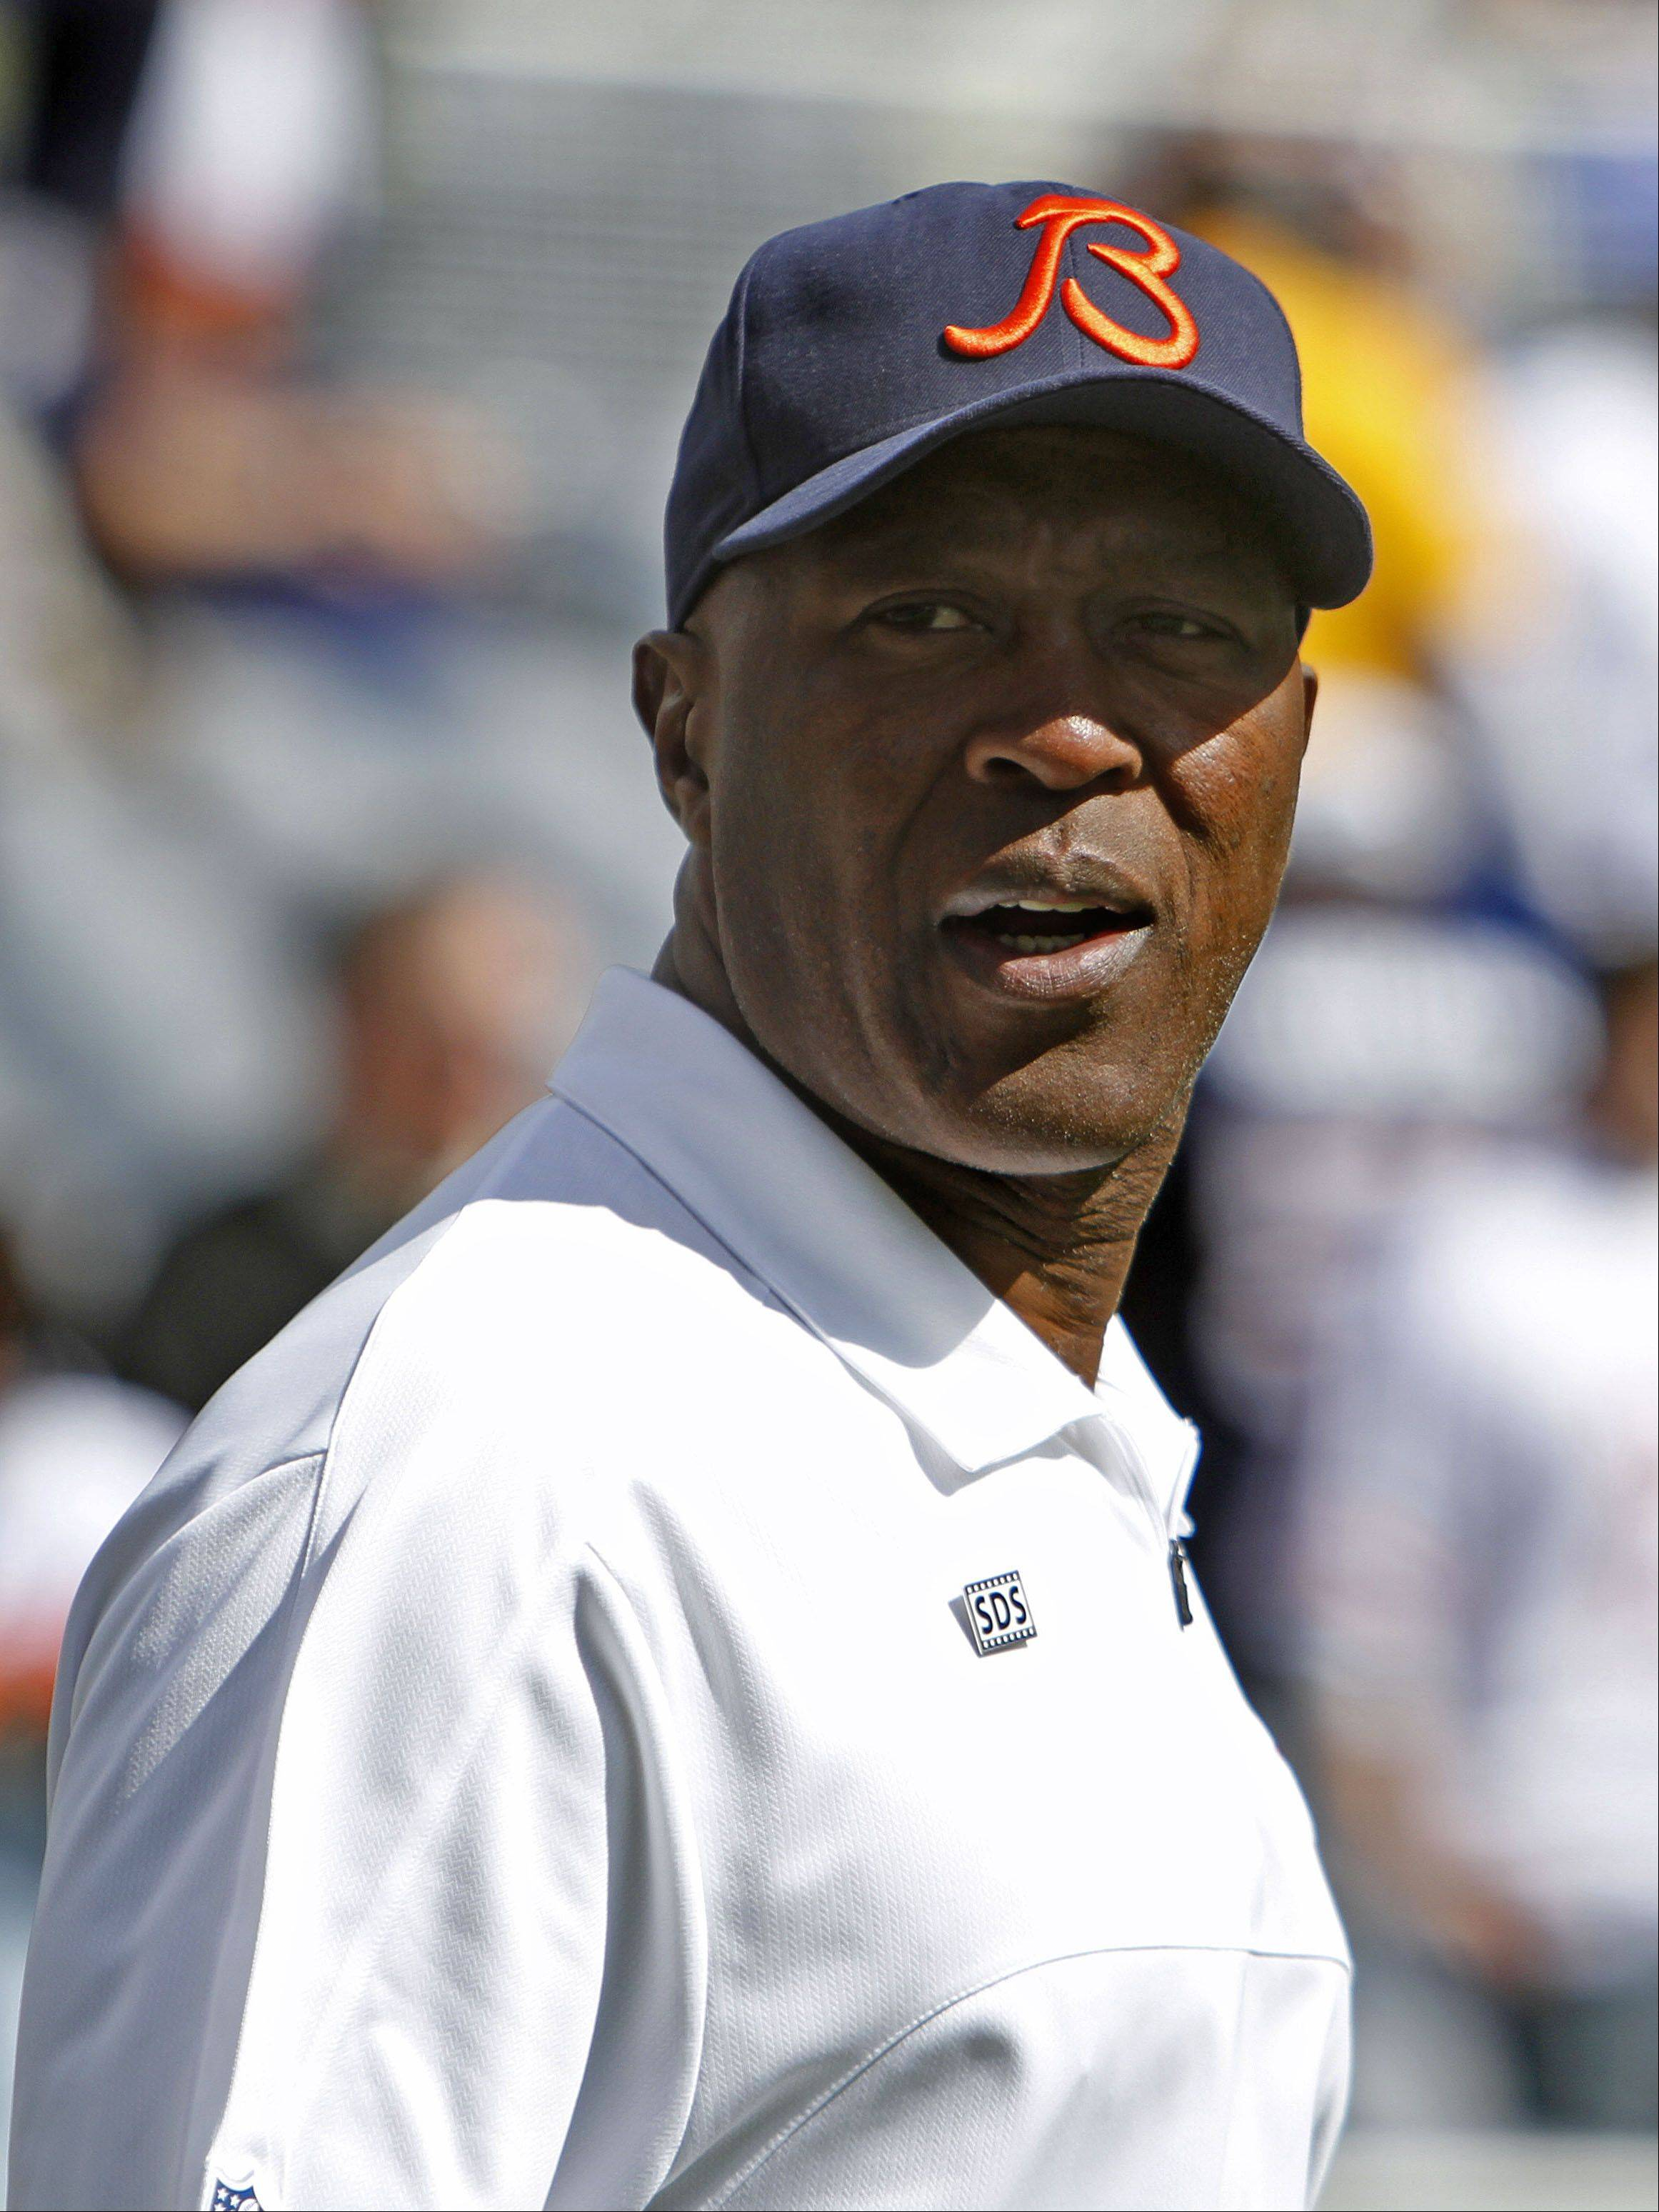 Chicago Bears Bears' coach Lovie Smith walks the sidelines prior to their game Sunday at Soldier Field in Chicago.